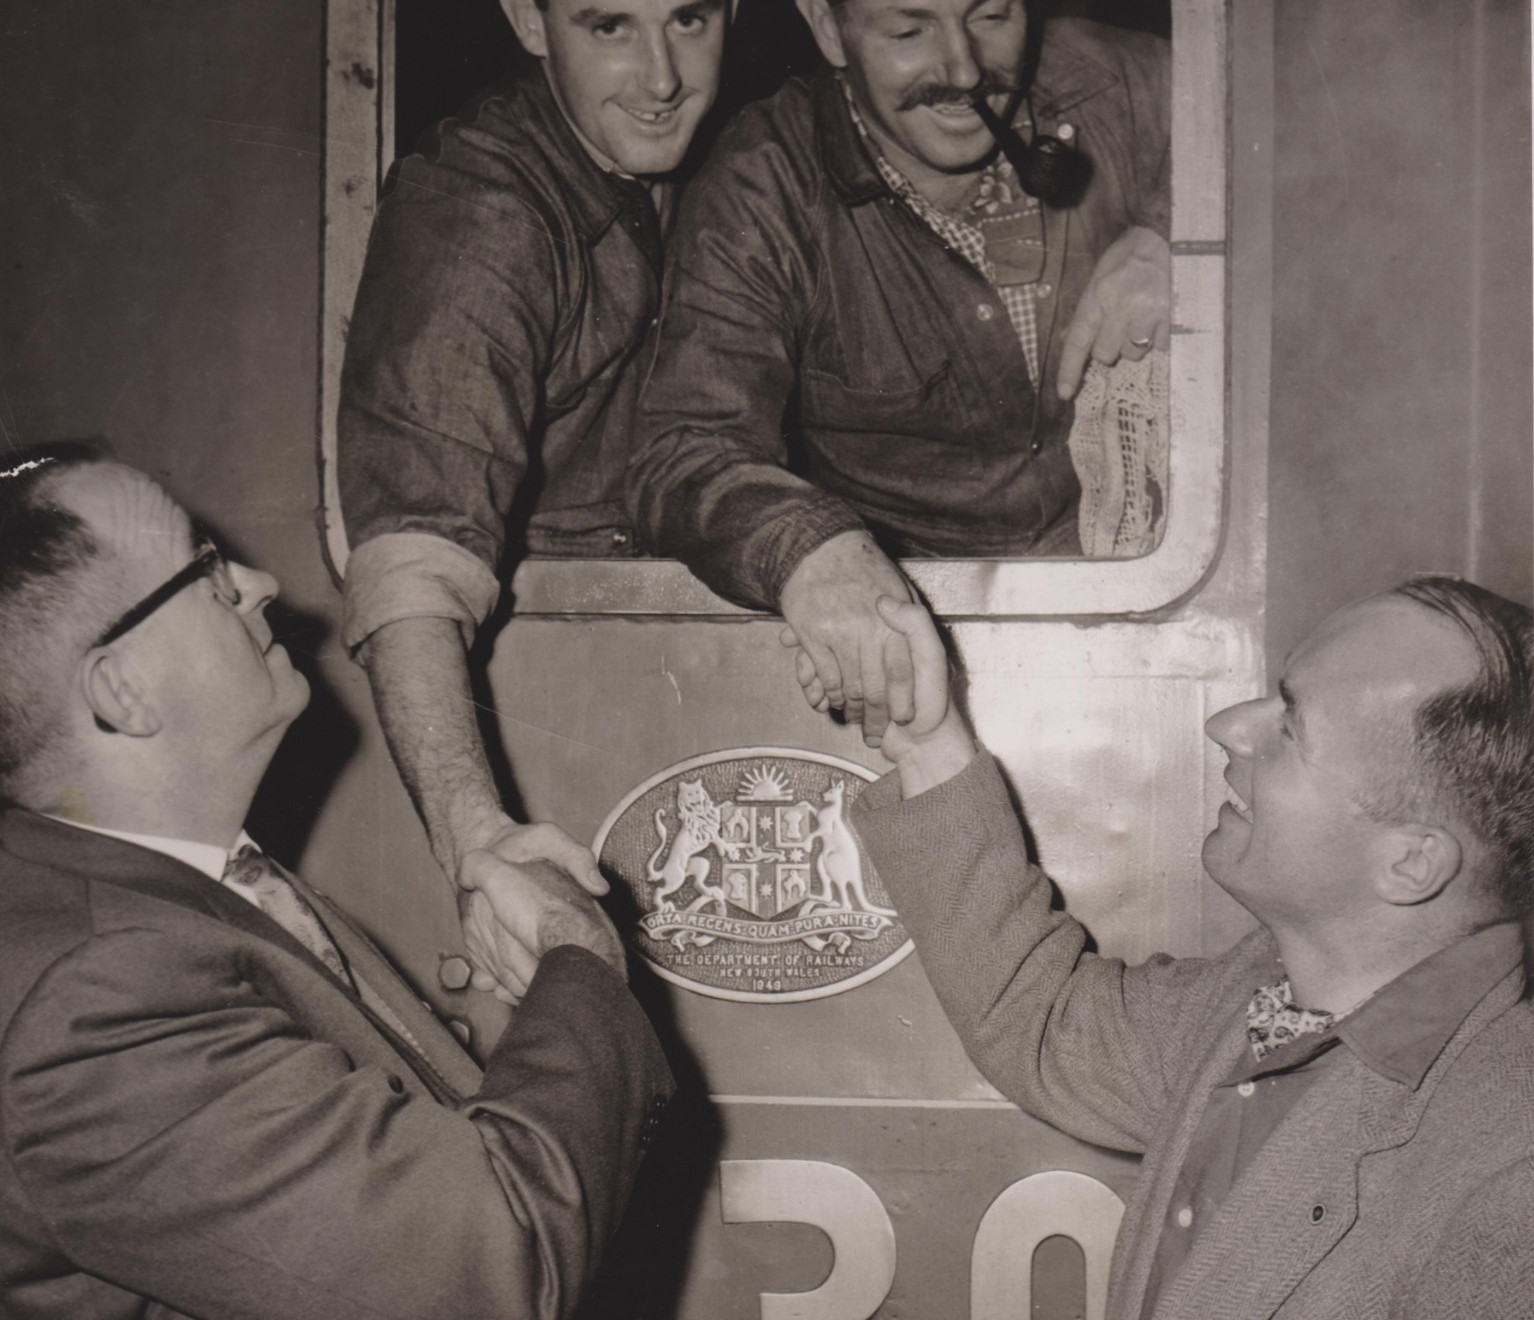 Fireman David Thurlow (left) and driver Chris O'Sullivan (right) in the cab of 3830 at Sydney Terminal, shaking hands with the two ARHS organisers on the successful and on-time completion of the delivery run of the Spirit of Progress. -C. Cardew, Dave Thurlow Collection